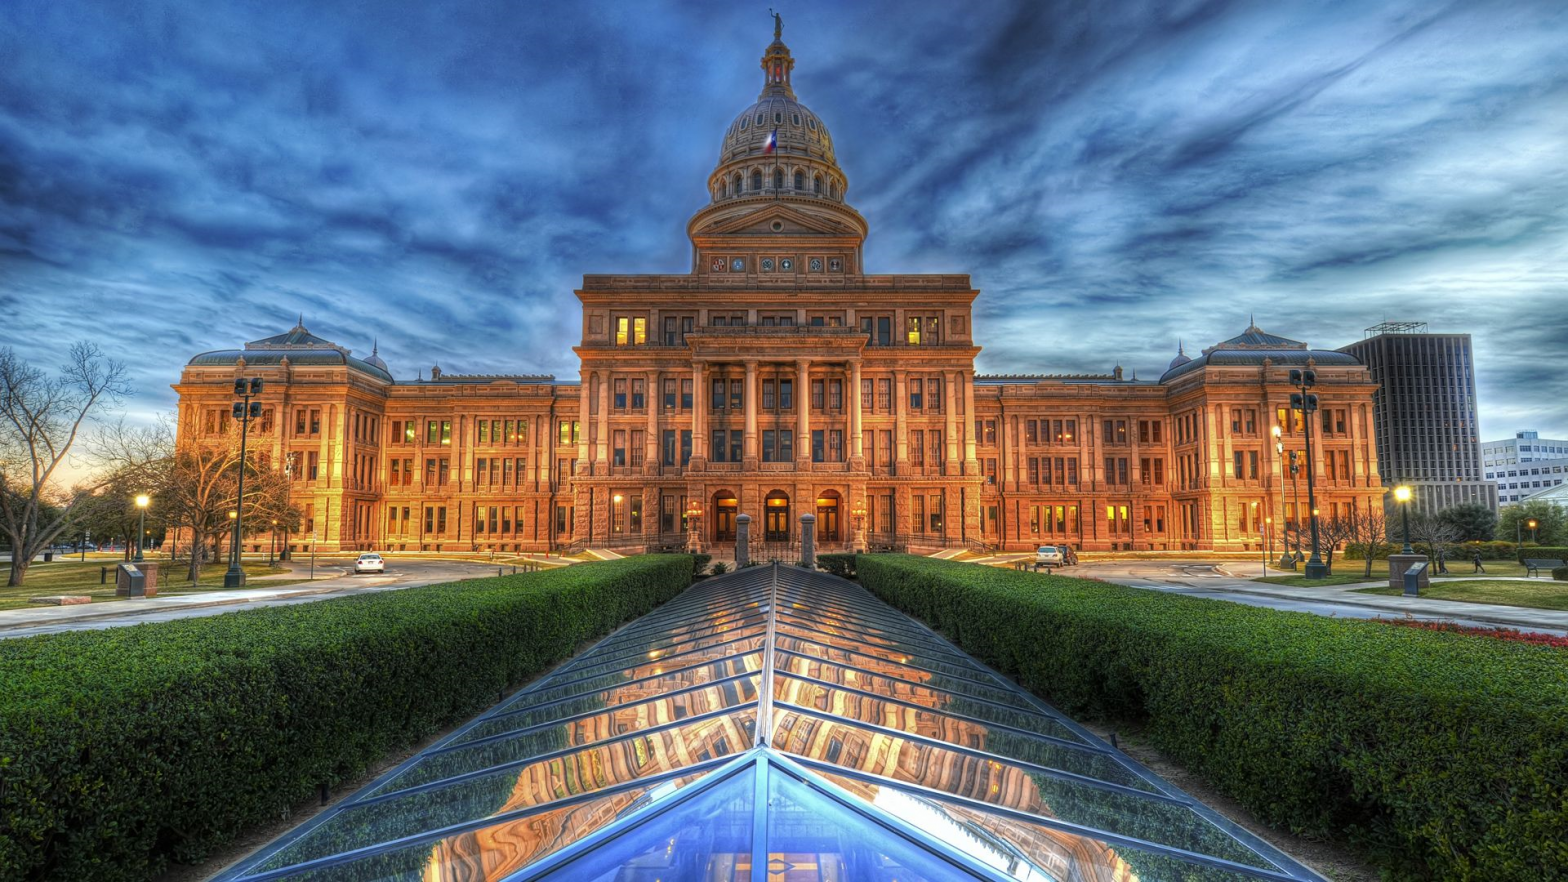 Texas wil anonieme cryptocurrency exchange verbieden